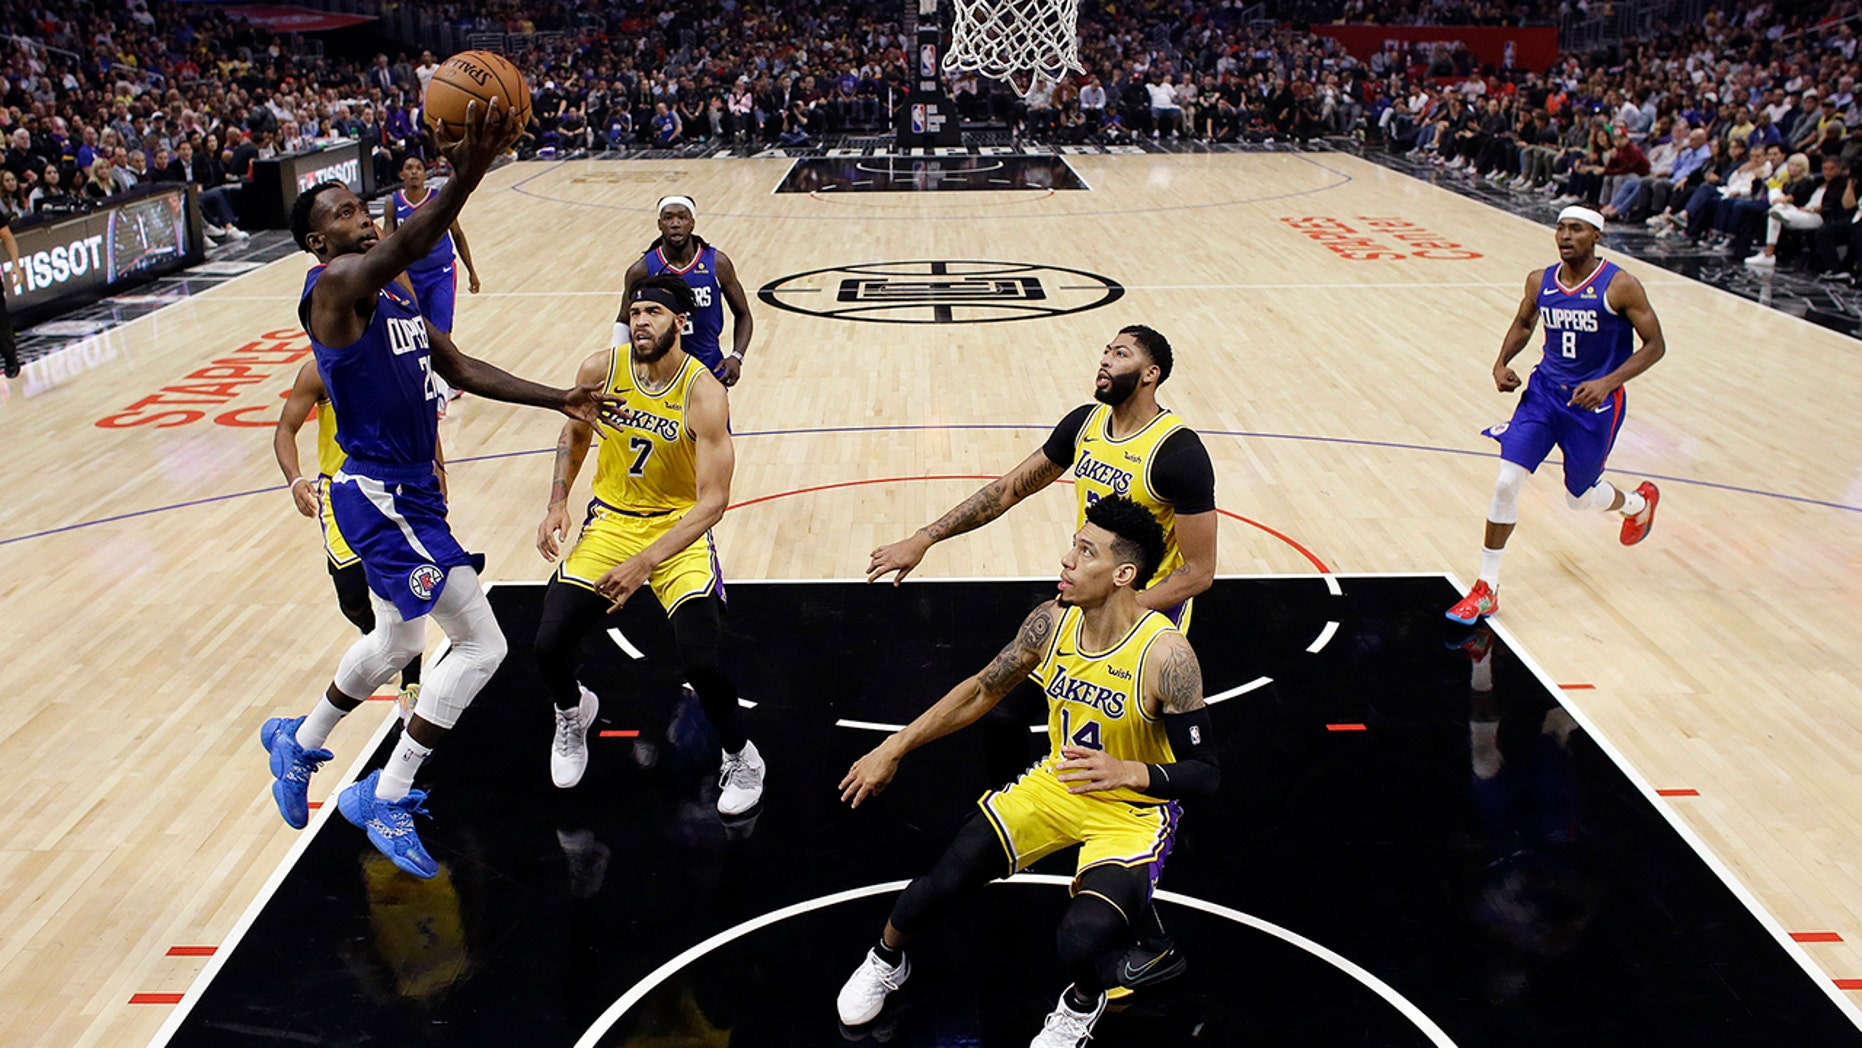 Los Angeles Clippers' Patrick Beverley, left, drives to the basket against the Los Angeles Lakers during the first half of an NBA basketball game Tuesday, Oct. 22, 2019, in Los Angeles. (AP Photo/Marcio Jose Sanchez)